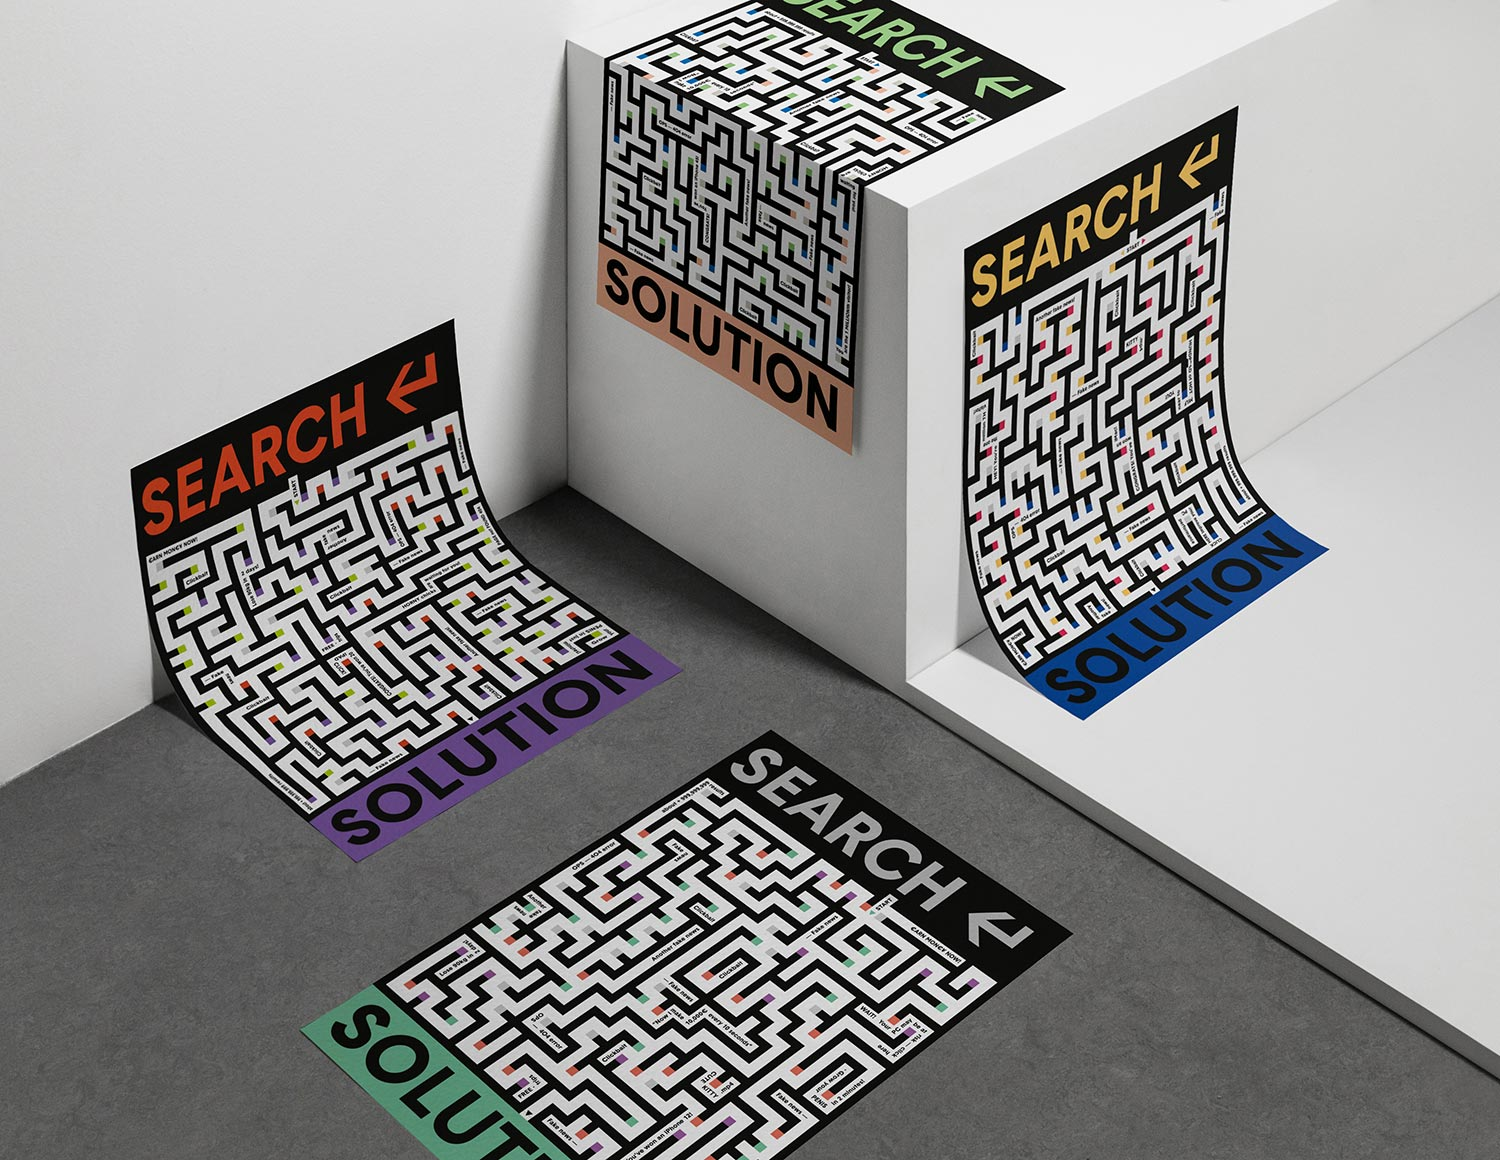 Search for Dieci Parole by Italianism poster series